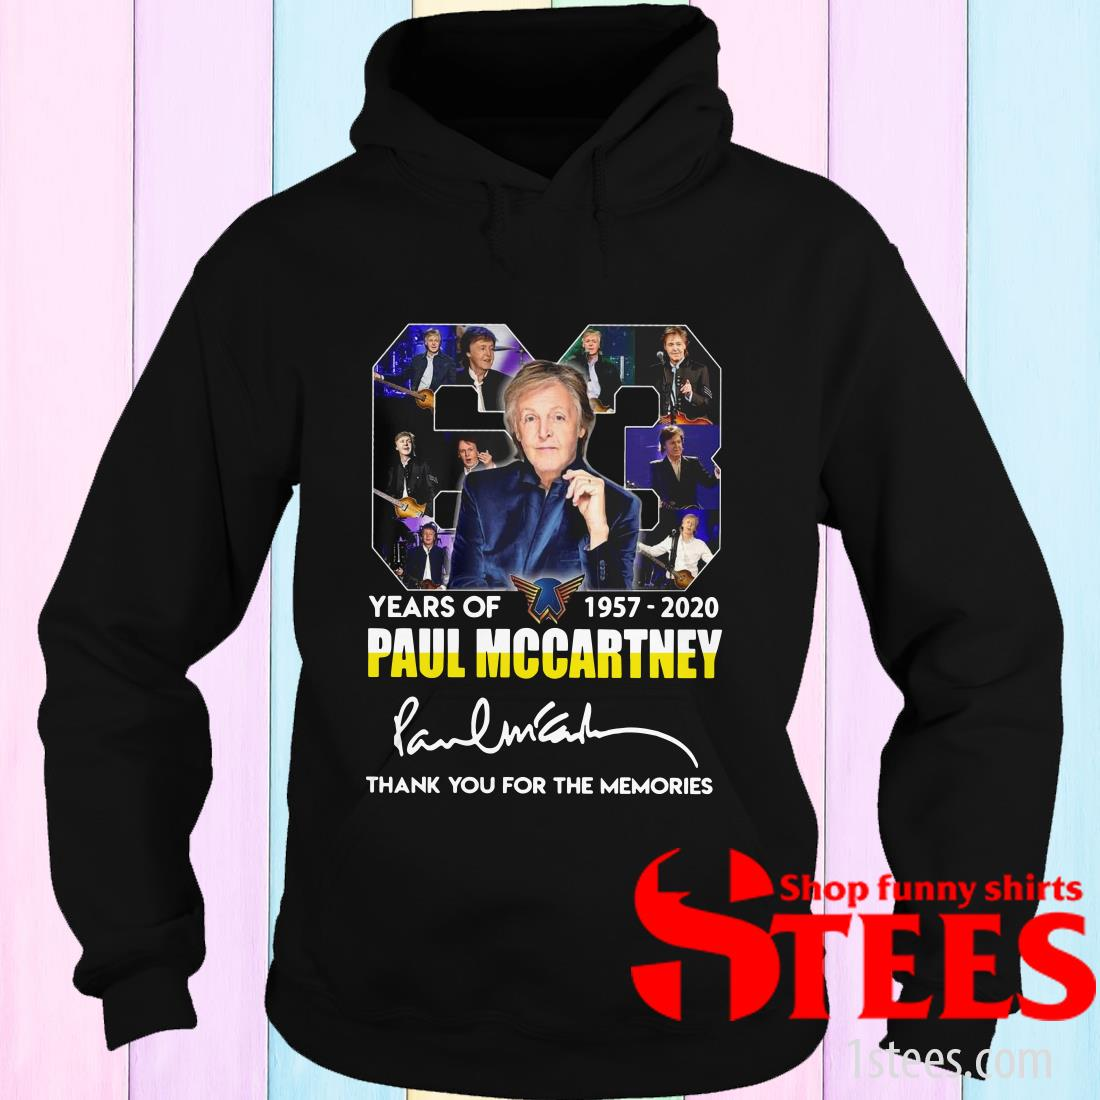 63 Years Of 1957 2020 Paul Mccartney Thank You For The Memories Signature Hoodies